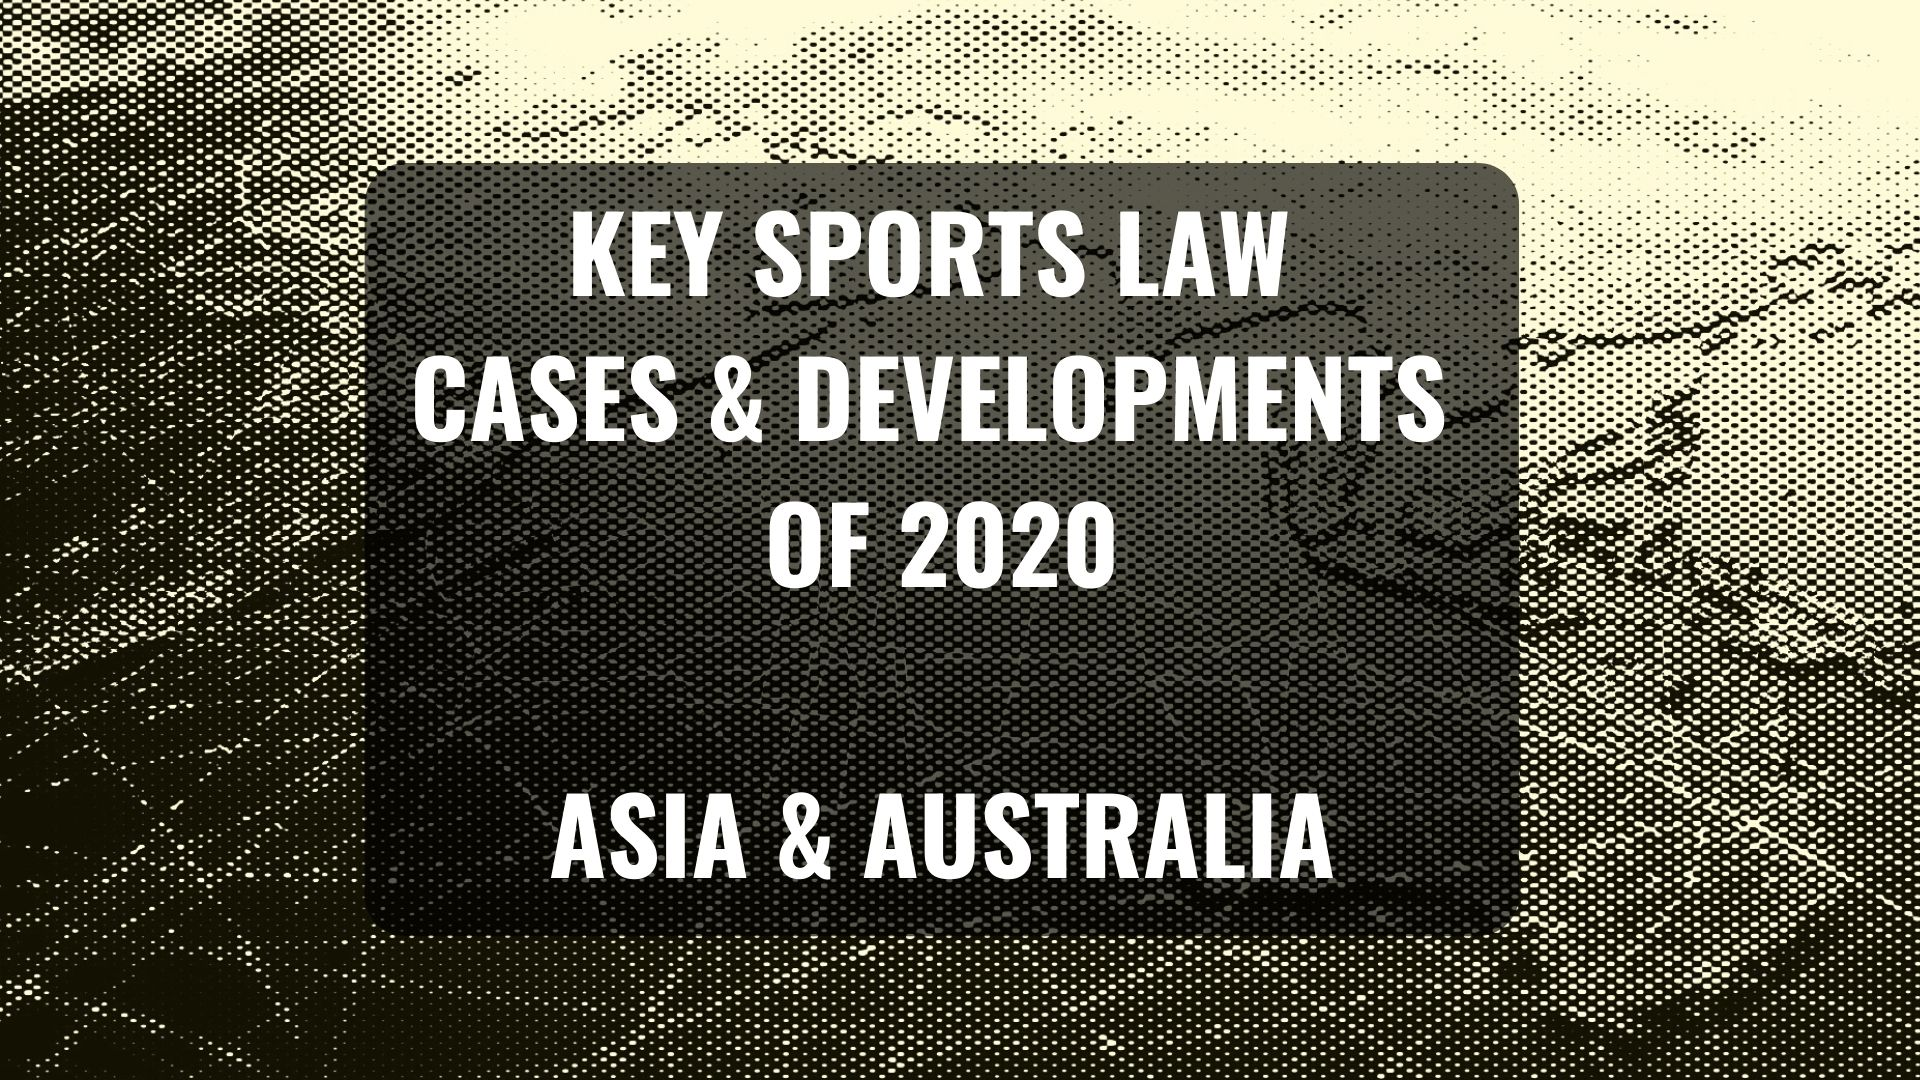 Key sports law cases and developments of 2020 – Africa, Asia & Australia